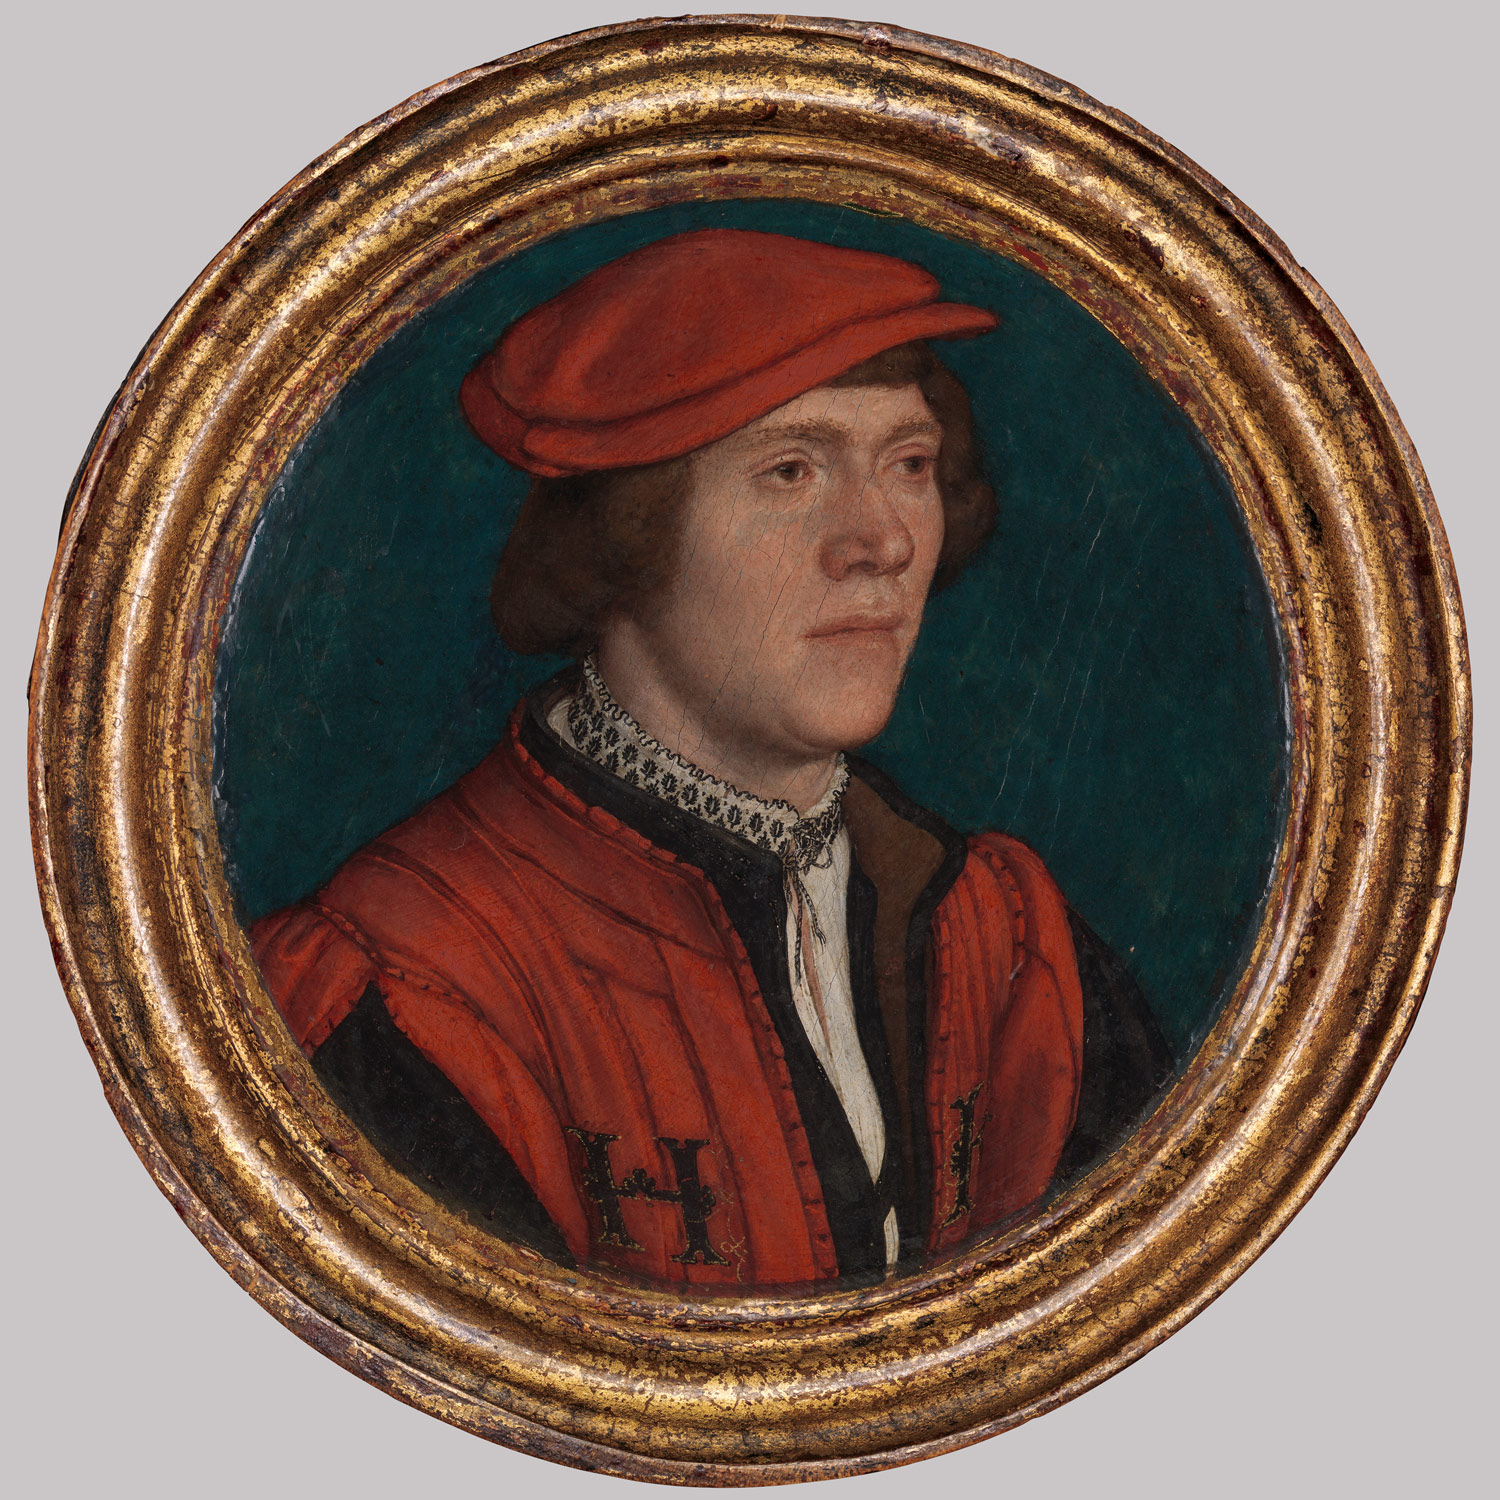 Portrait of a Man in a Red Cap